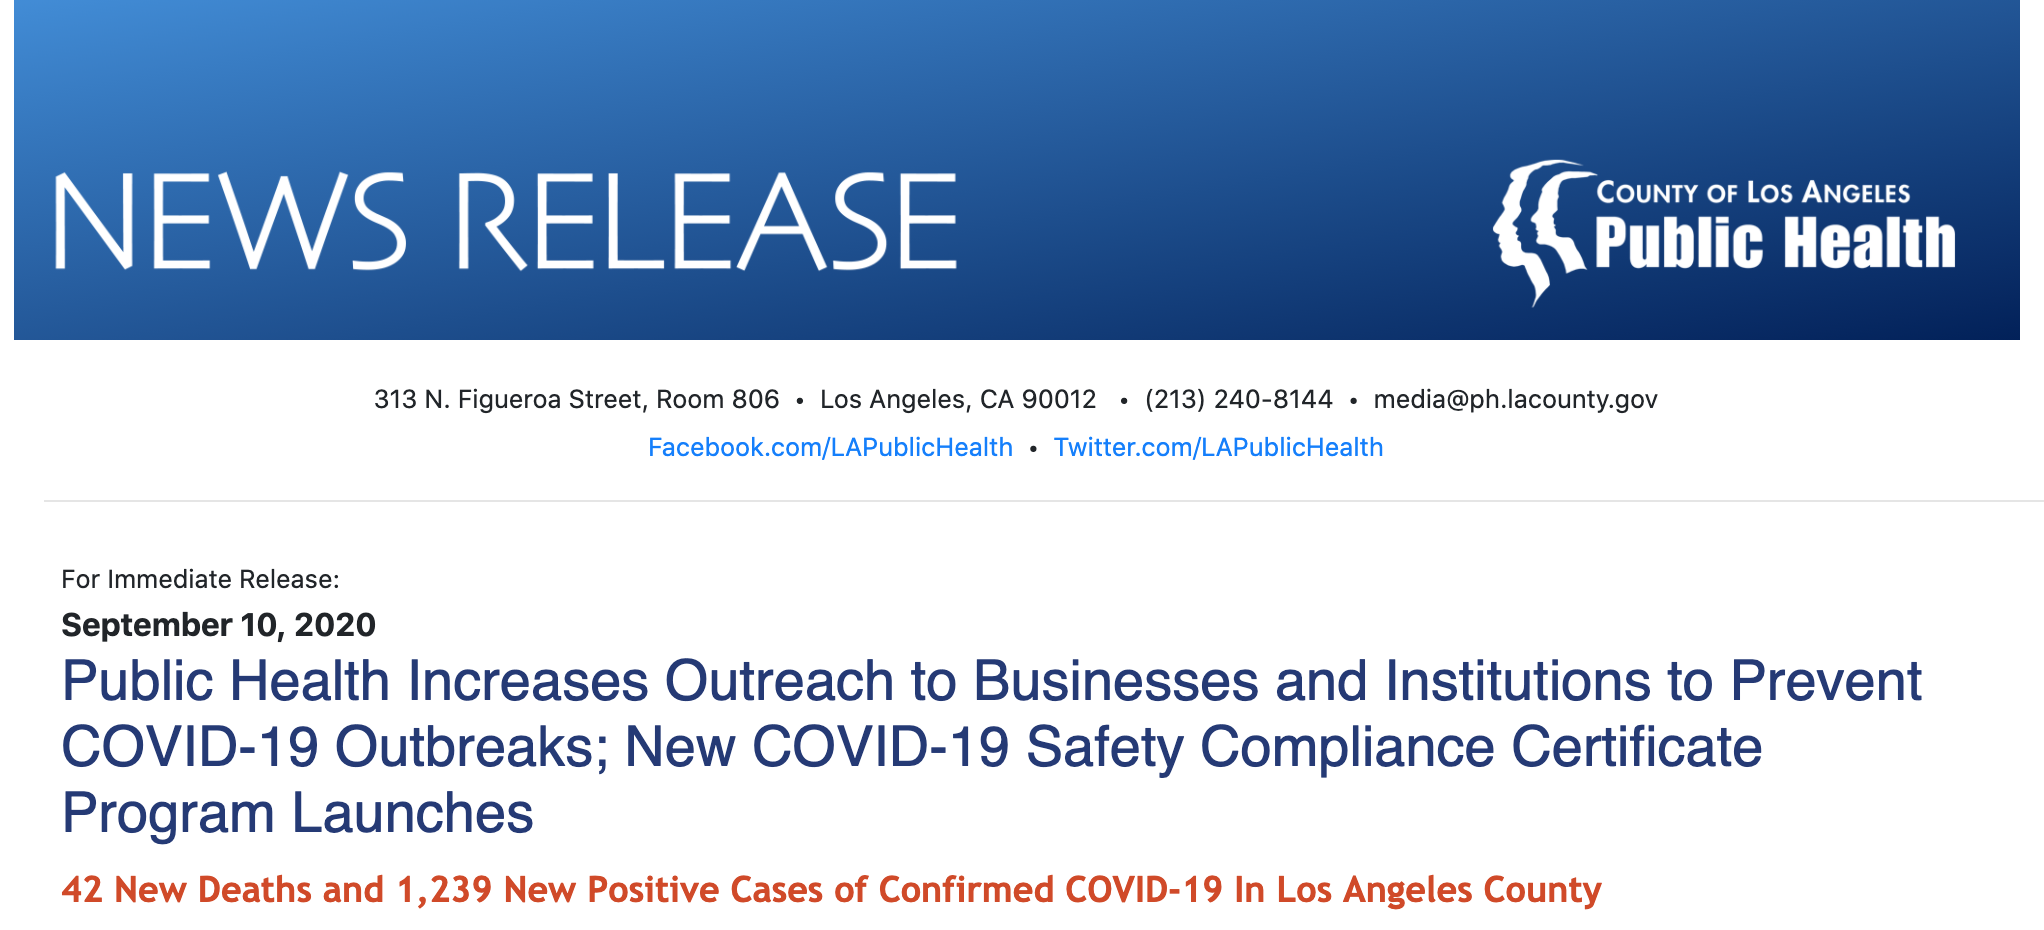 Public Health Increases Outreach to Businesses and Institutions to Prevent COVID-19 Outbreaks